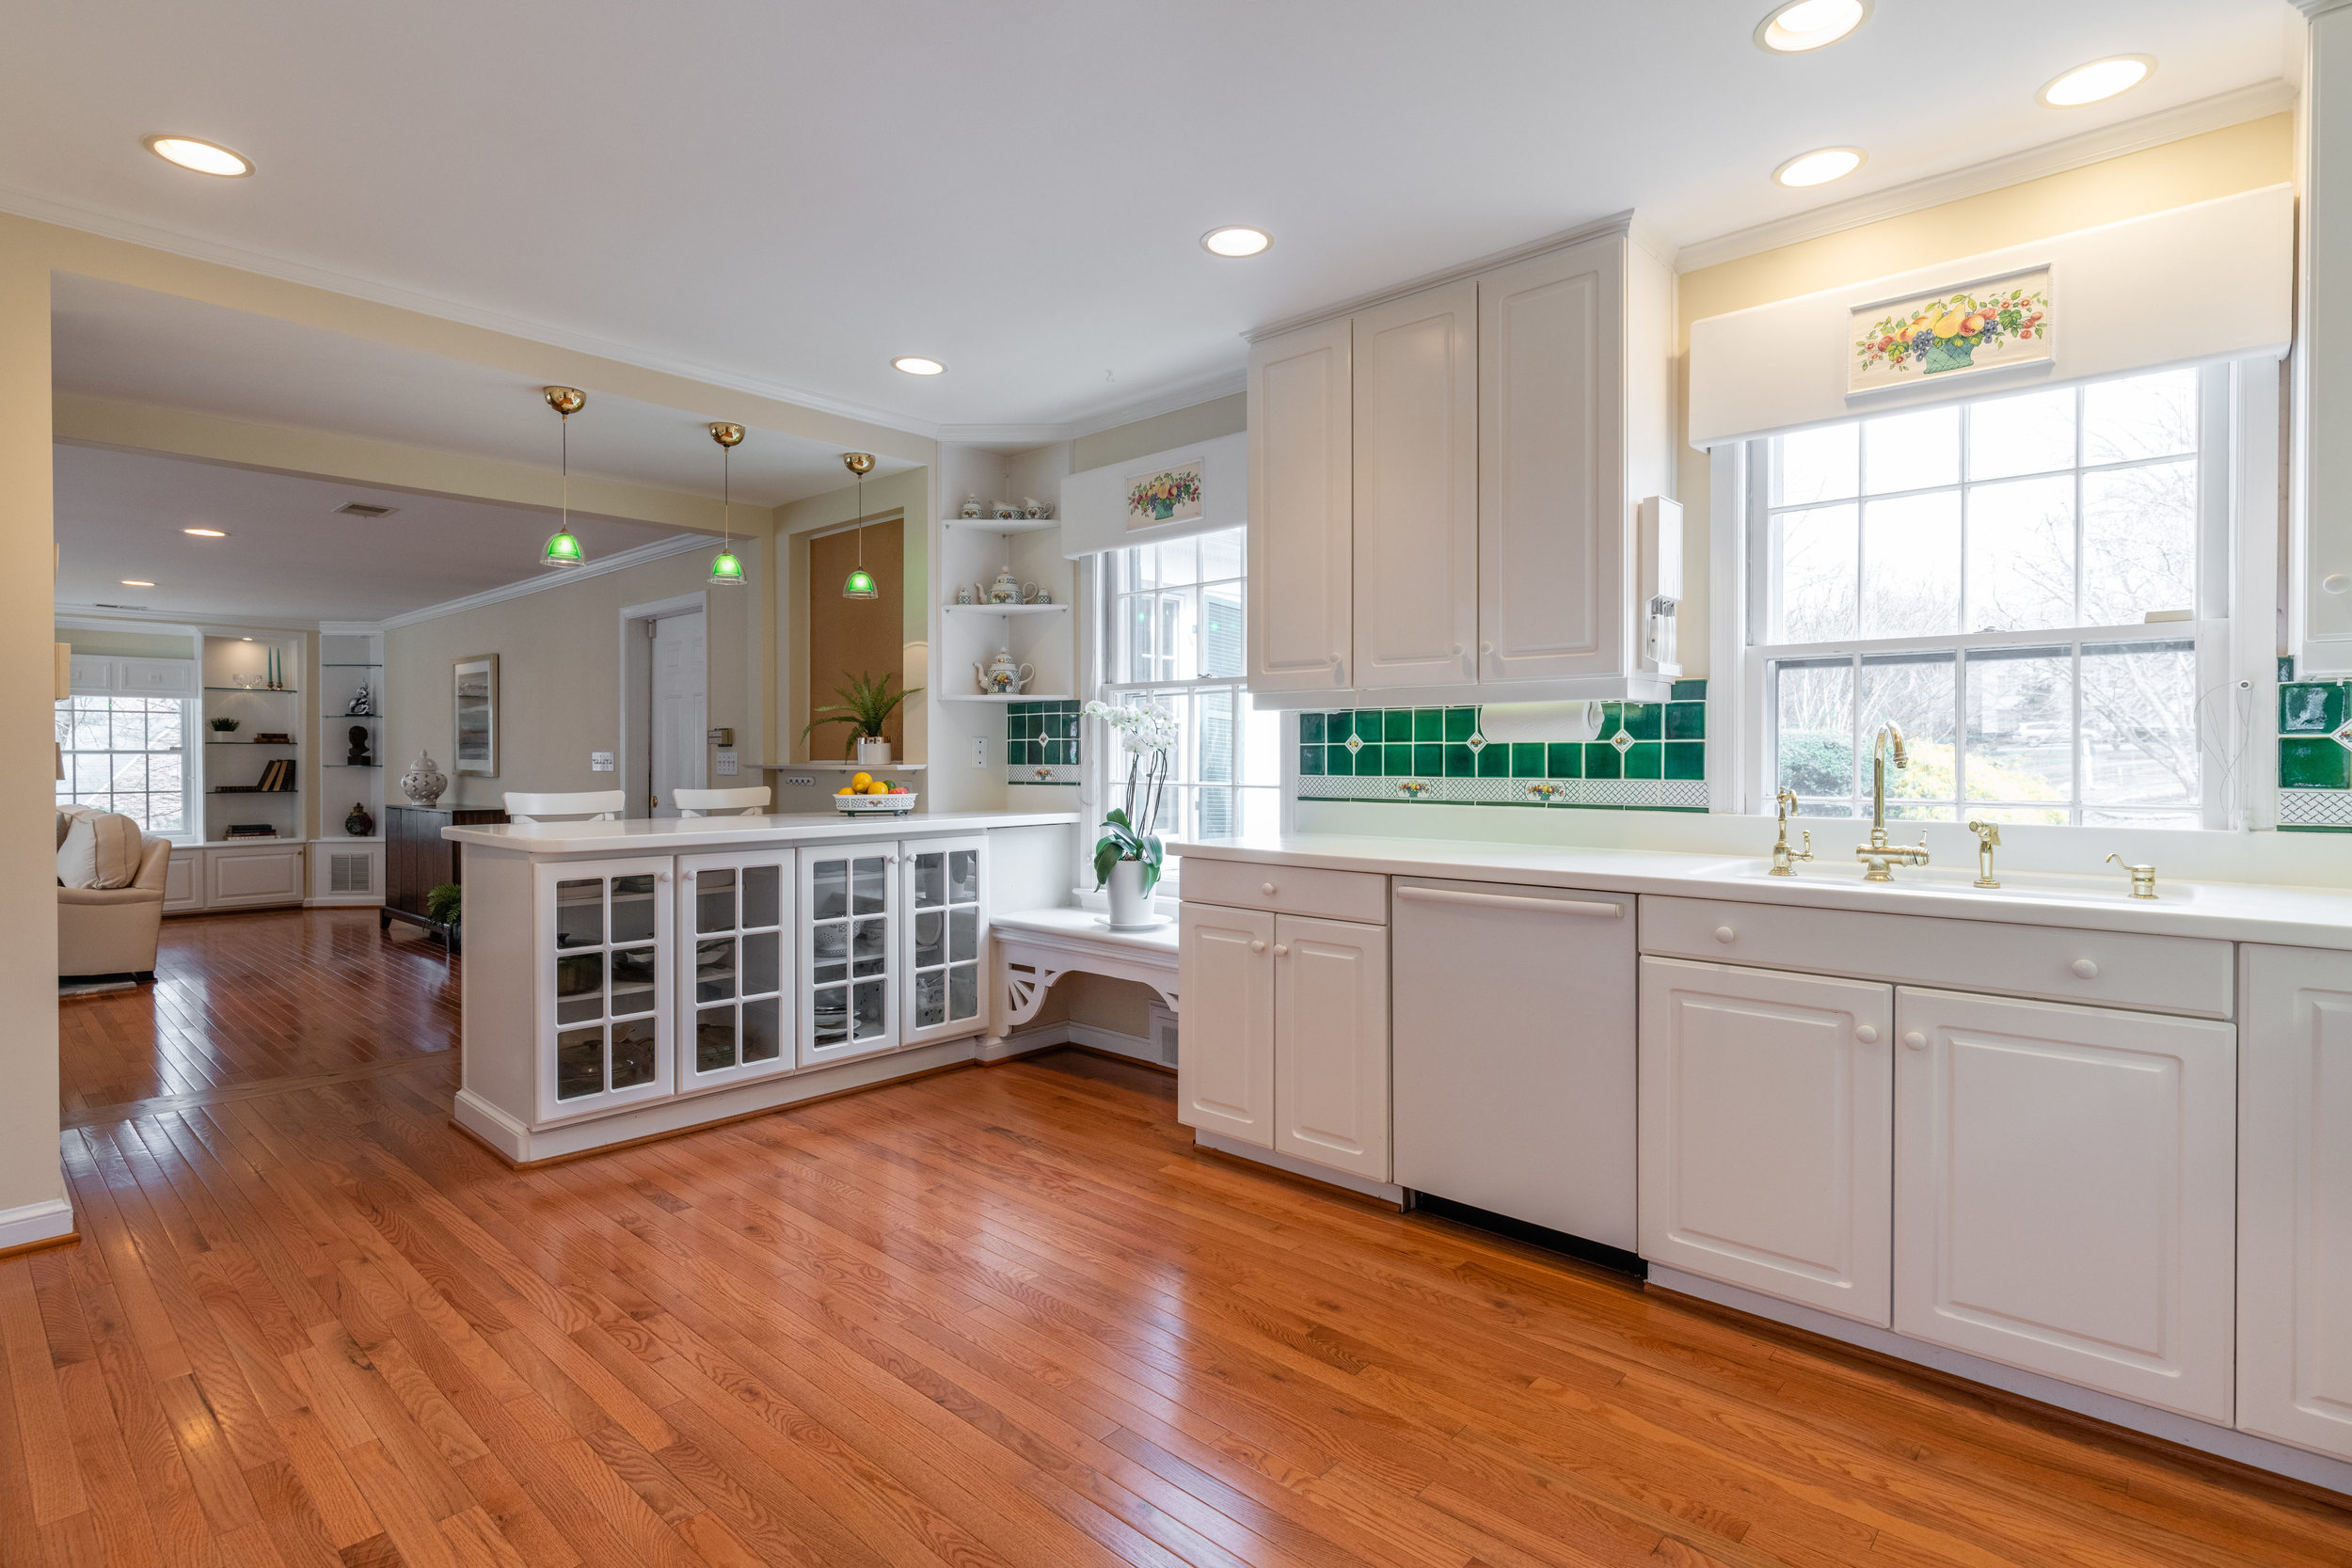 Spacious Kitchen features Breakfast Bar